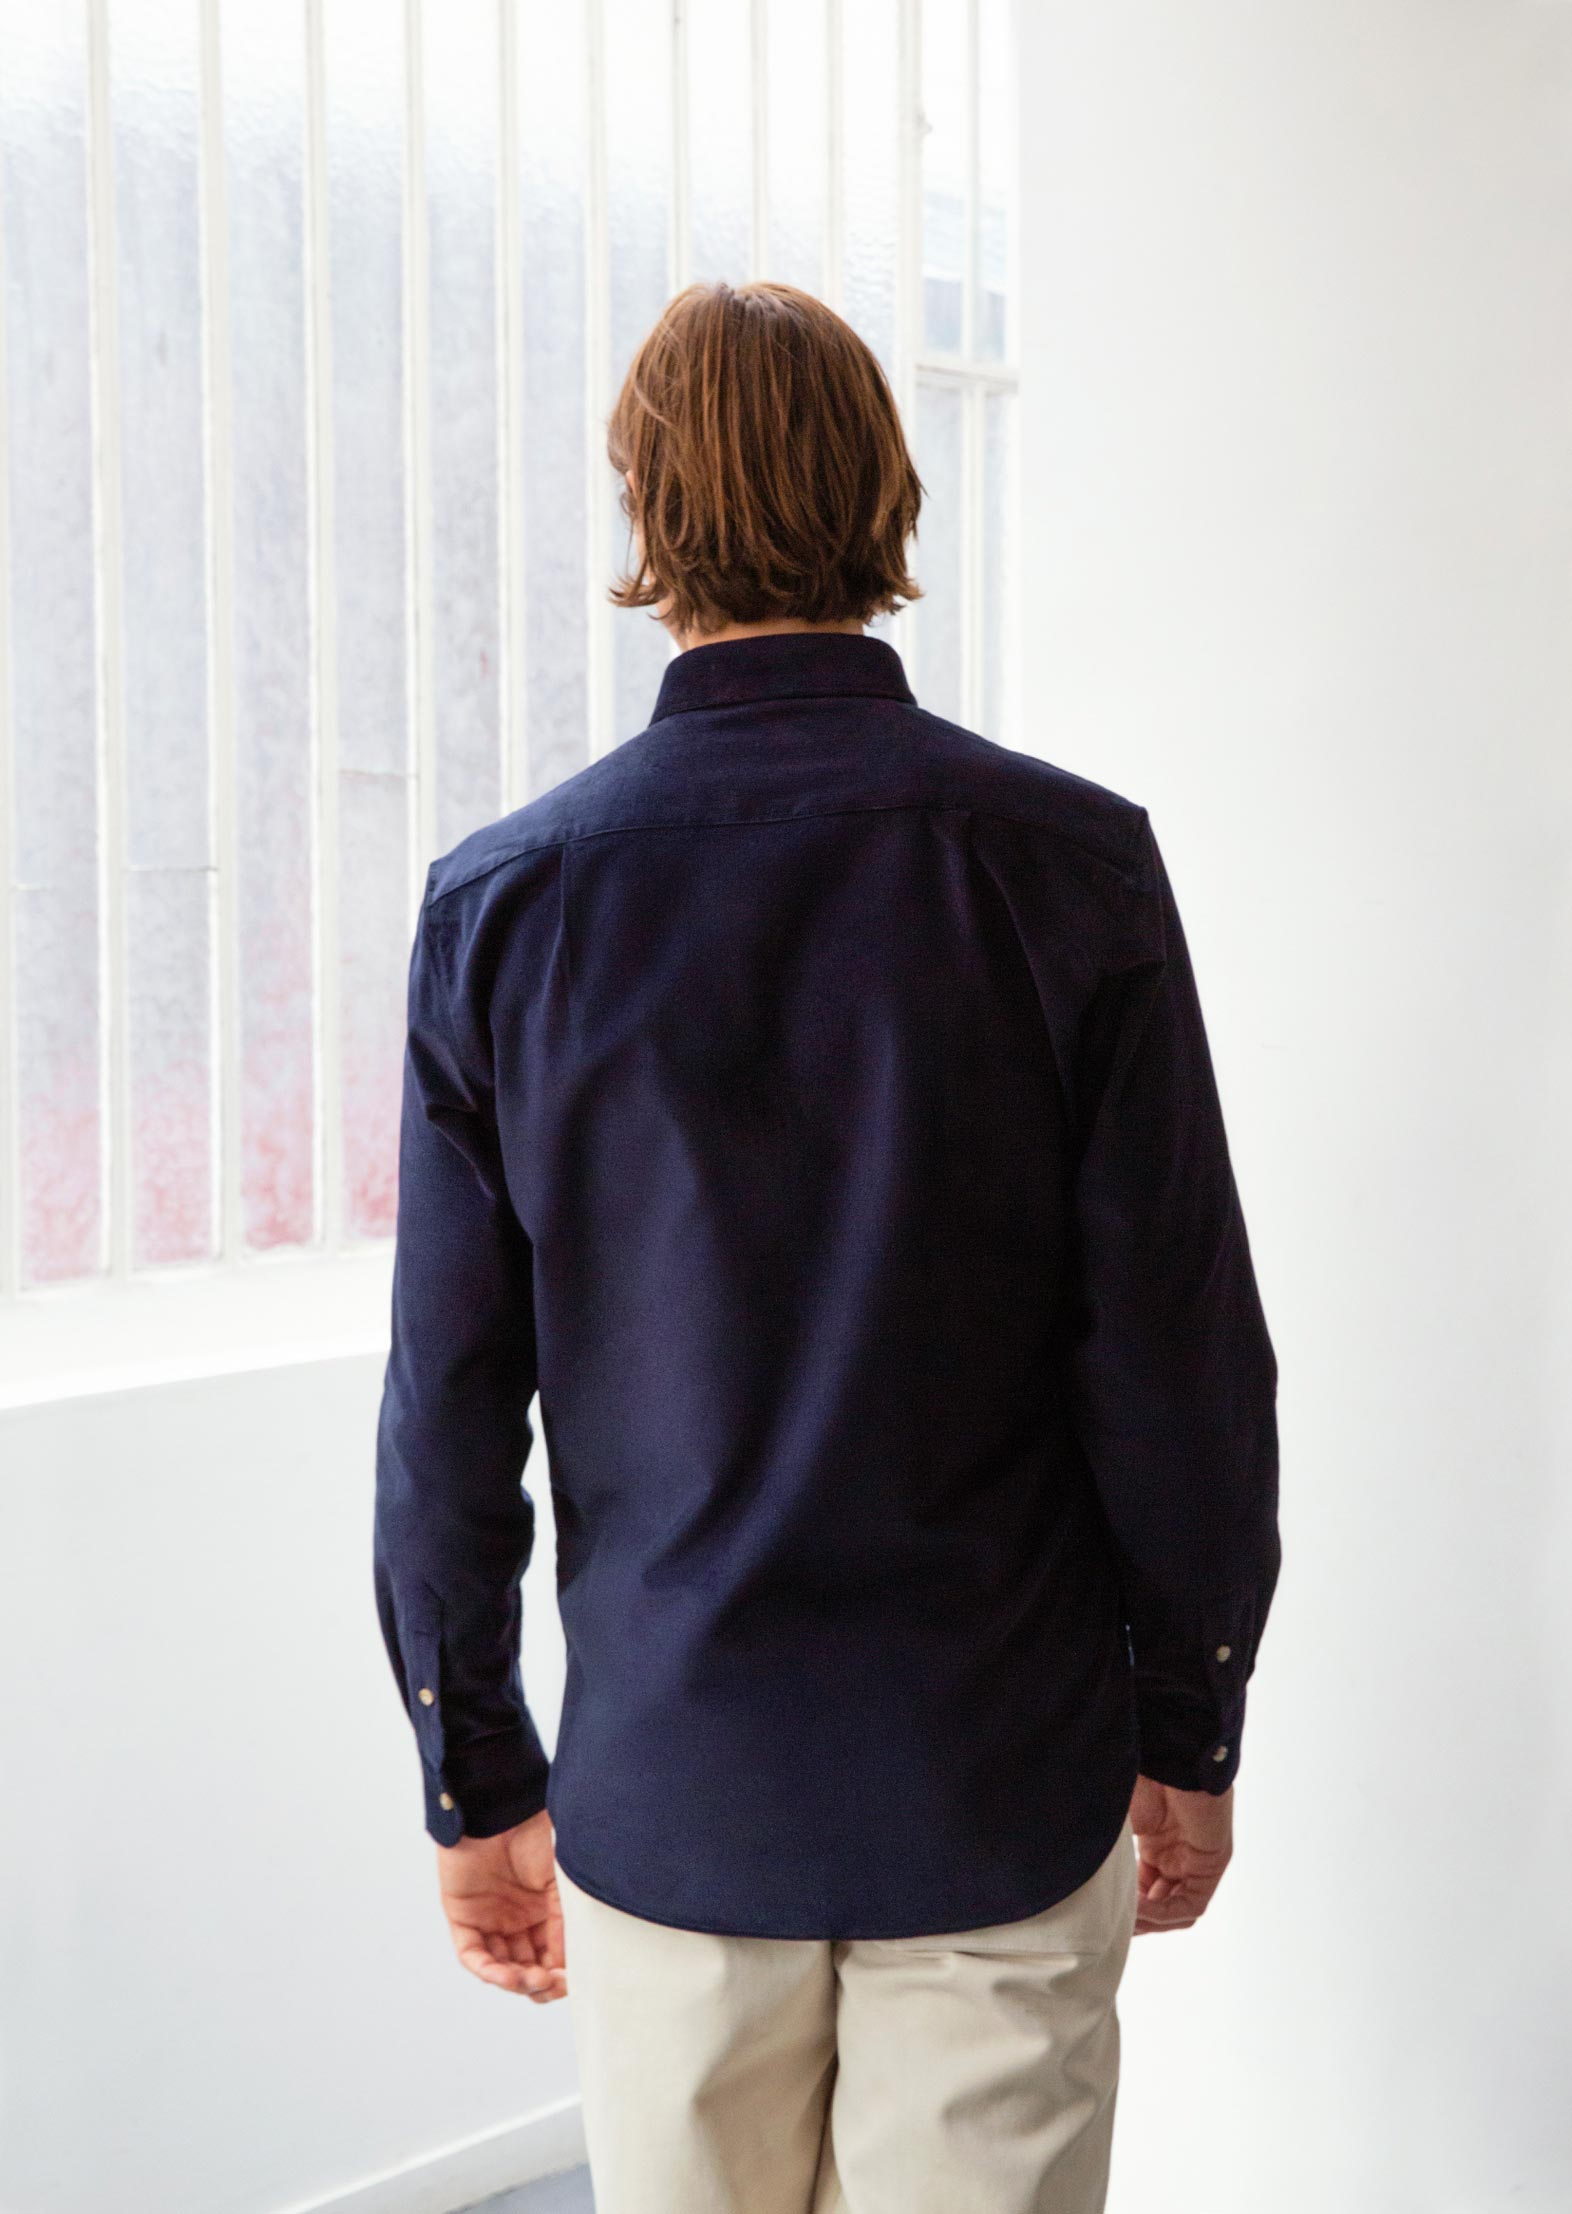 Buttondown shirt - English cotton needlecord - Navy - De Bonne Facture